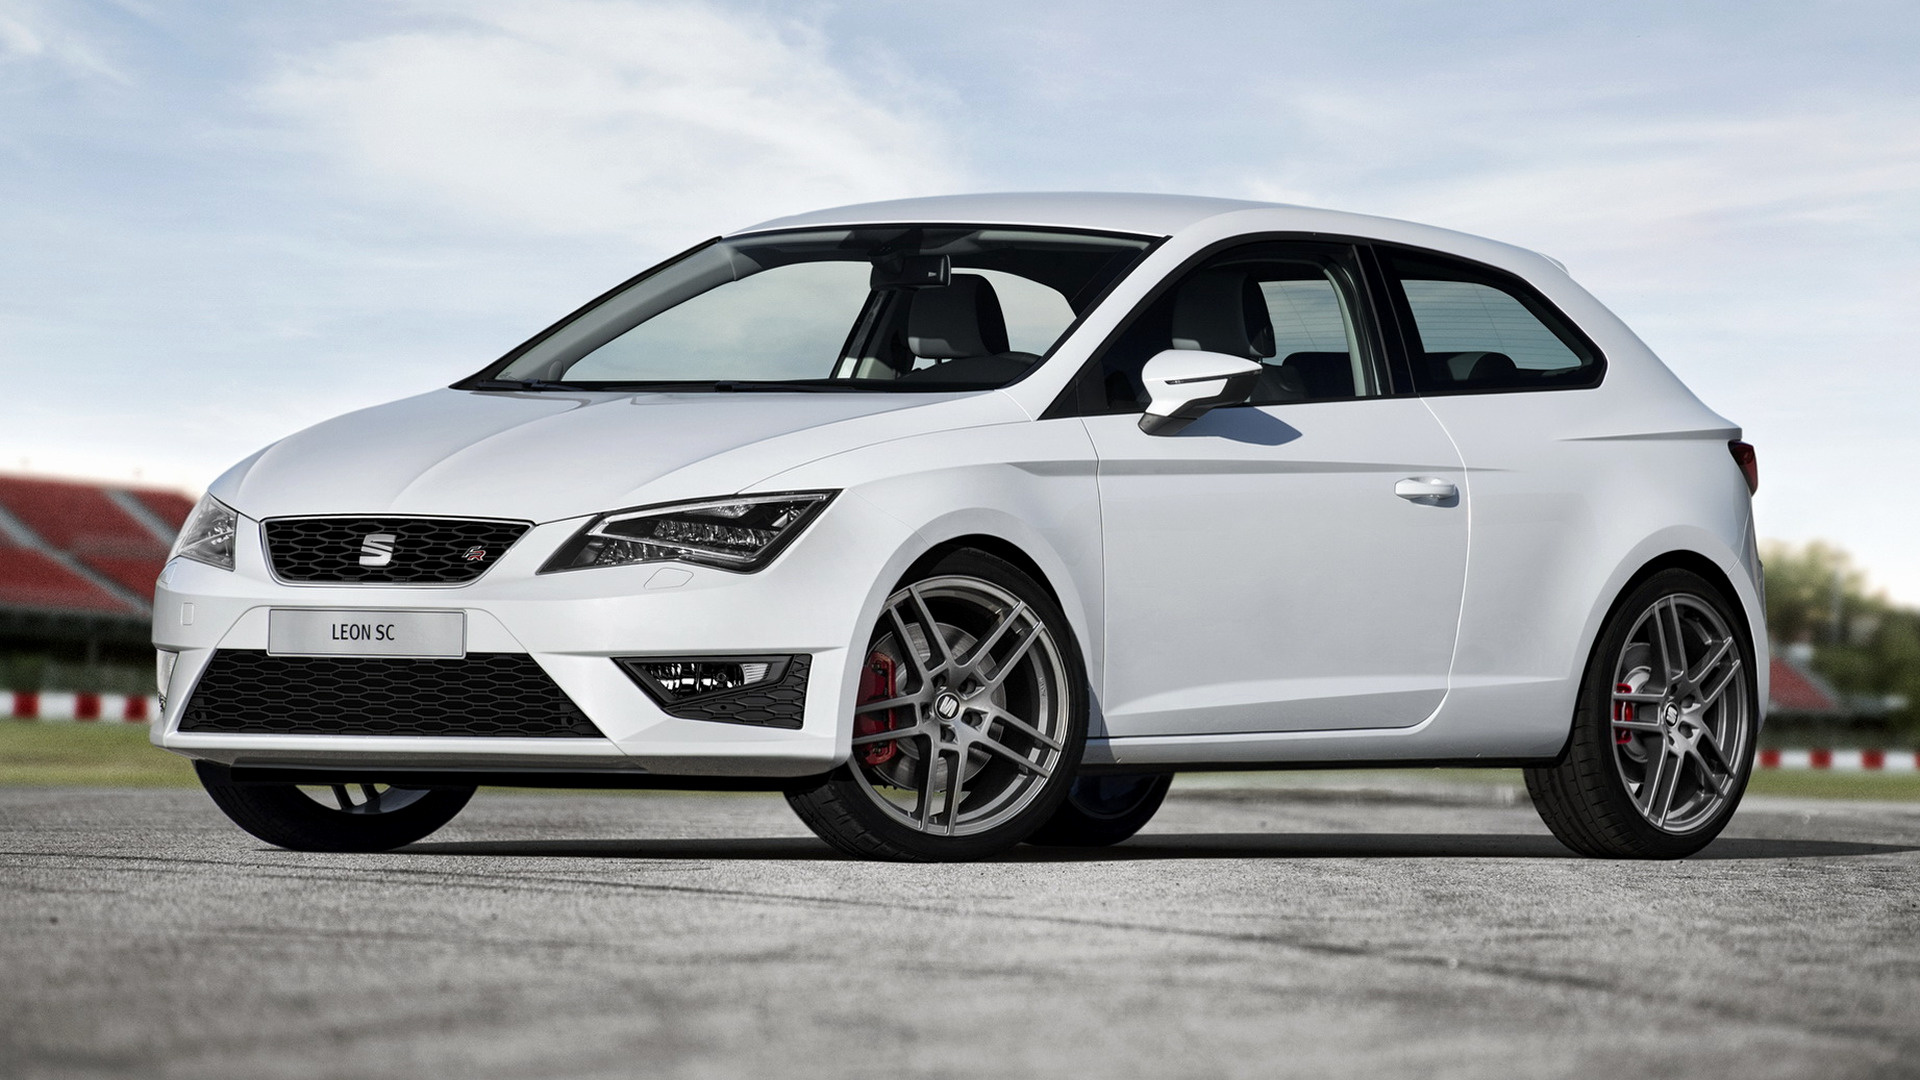 seat leon sc fr 2013 wallpapers and hd images car pixel. Black Bedroom Furniture Sets. Home Design Ideas